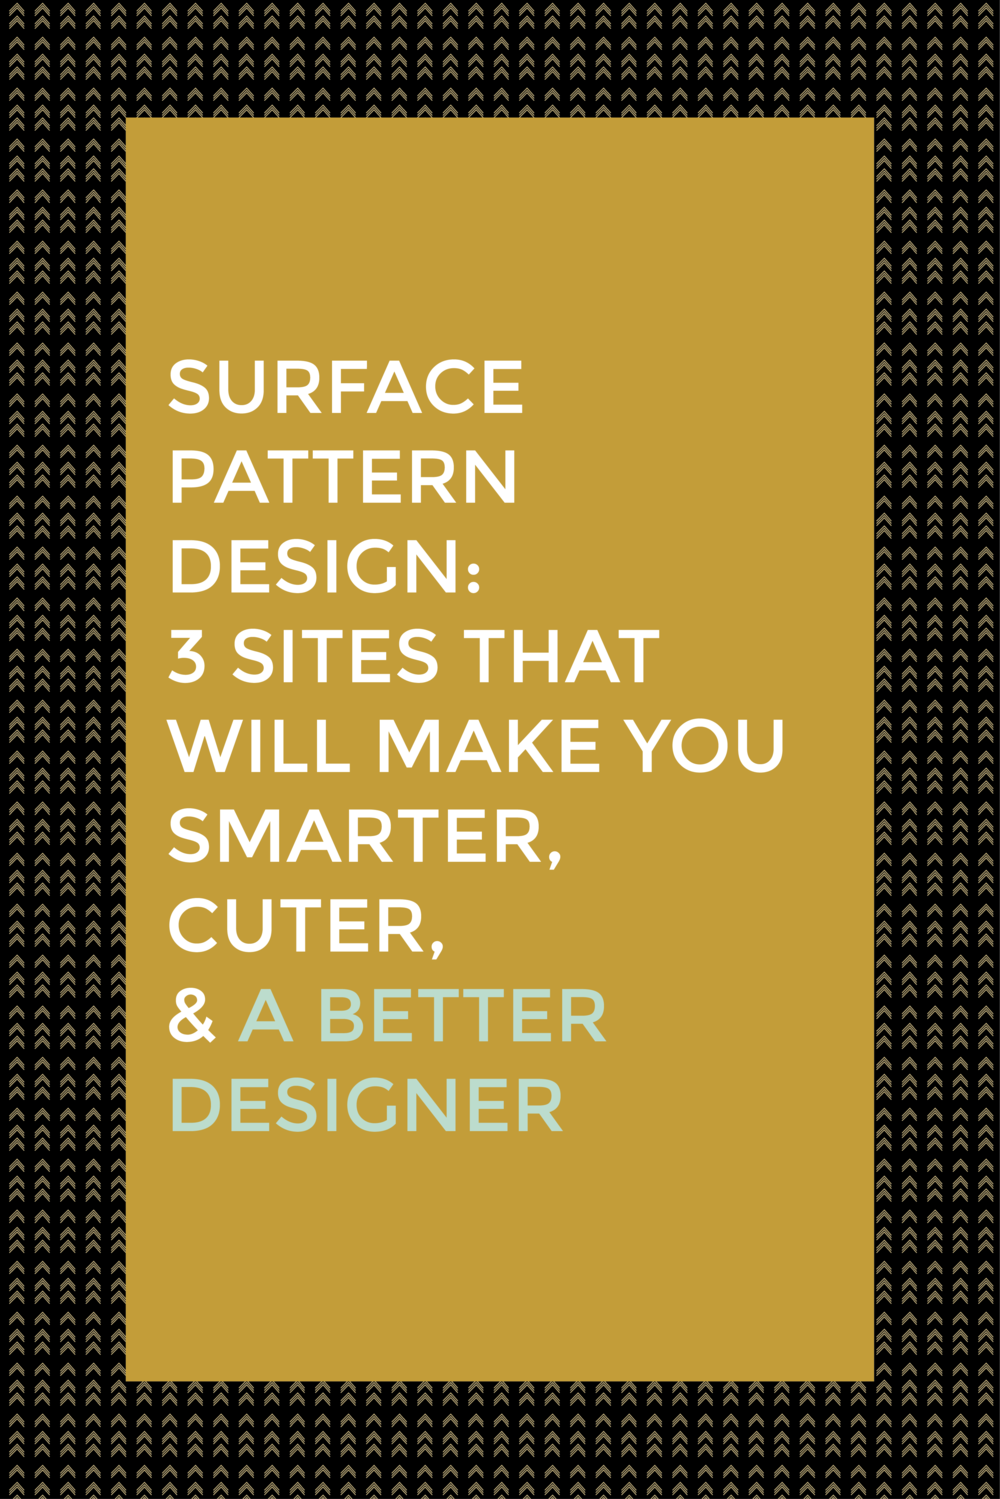 Surface Pattern Design:  3 Sites That Will Make You Smarter, Cuter, & a Better Designer